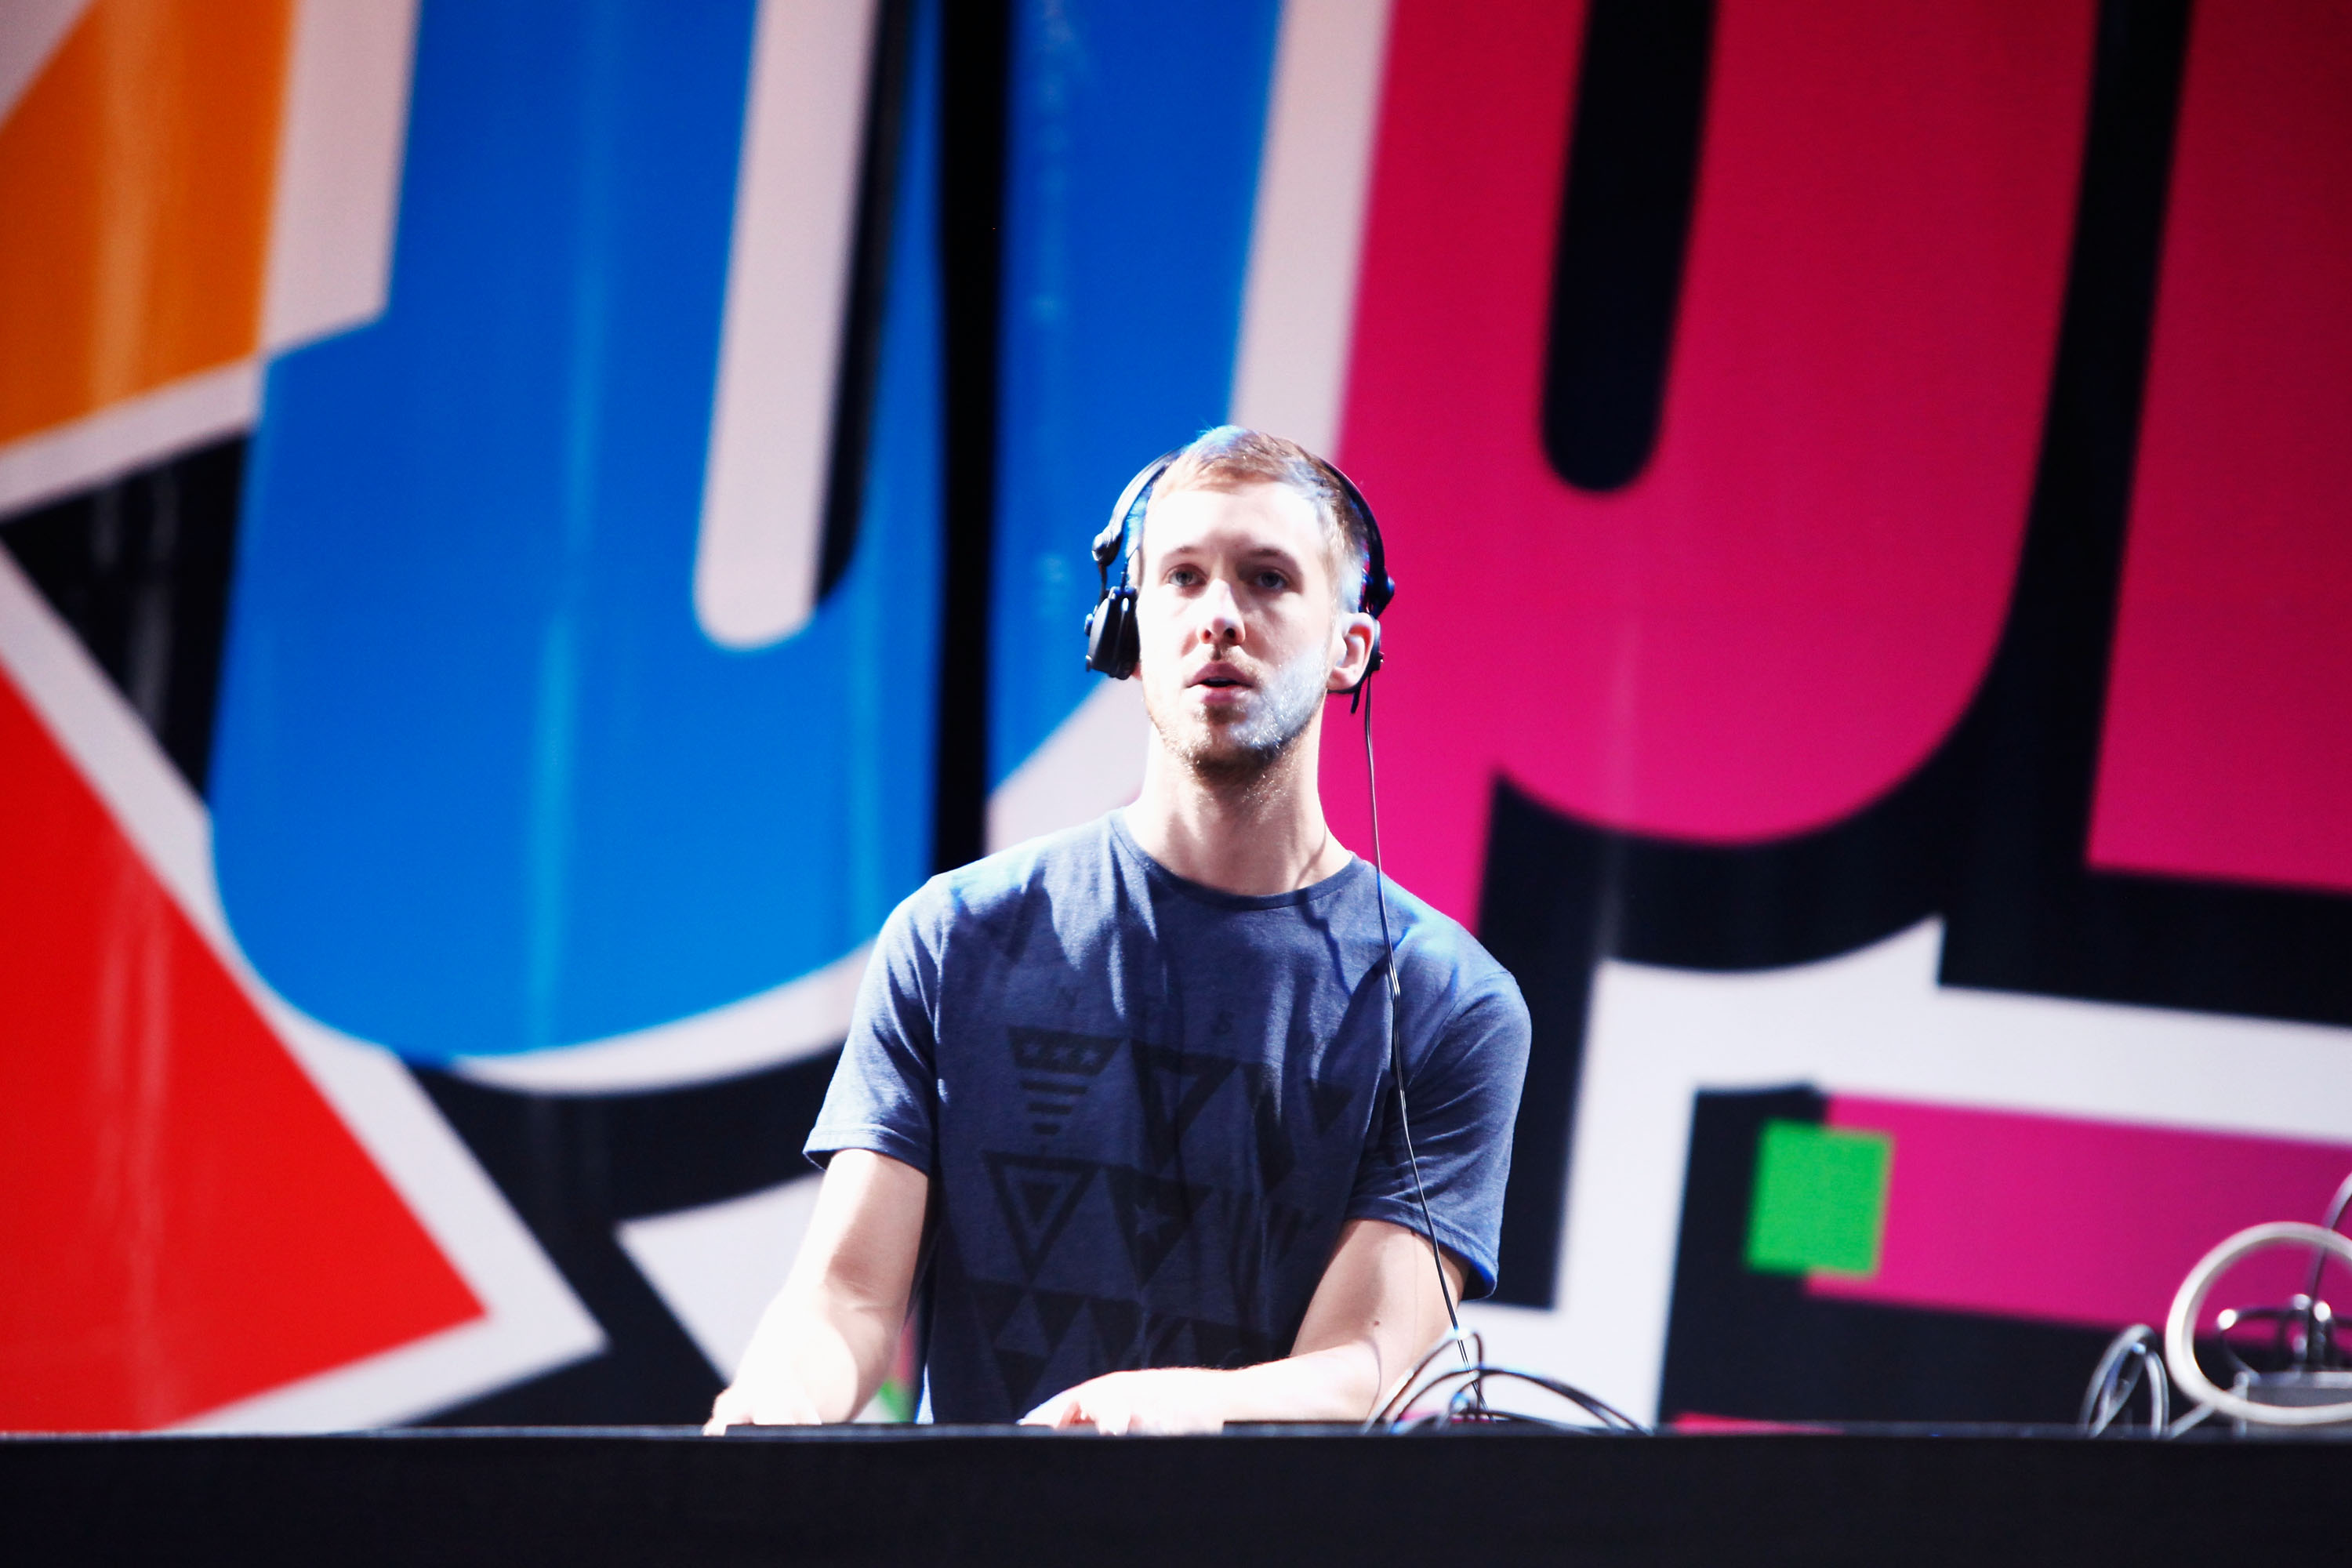 HOLMDEL, NJ - MAY 20:  DJ Calvin Harris spins onstage at 103.5 KTU's KTUphoria at PNC Bank Arts Center on May 20, 2012 in Hol